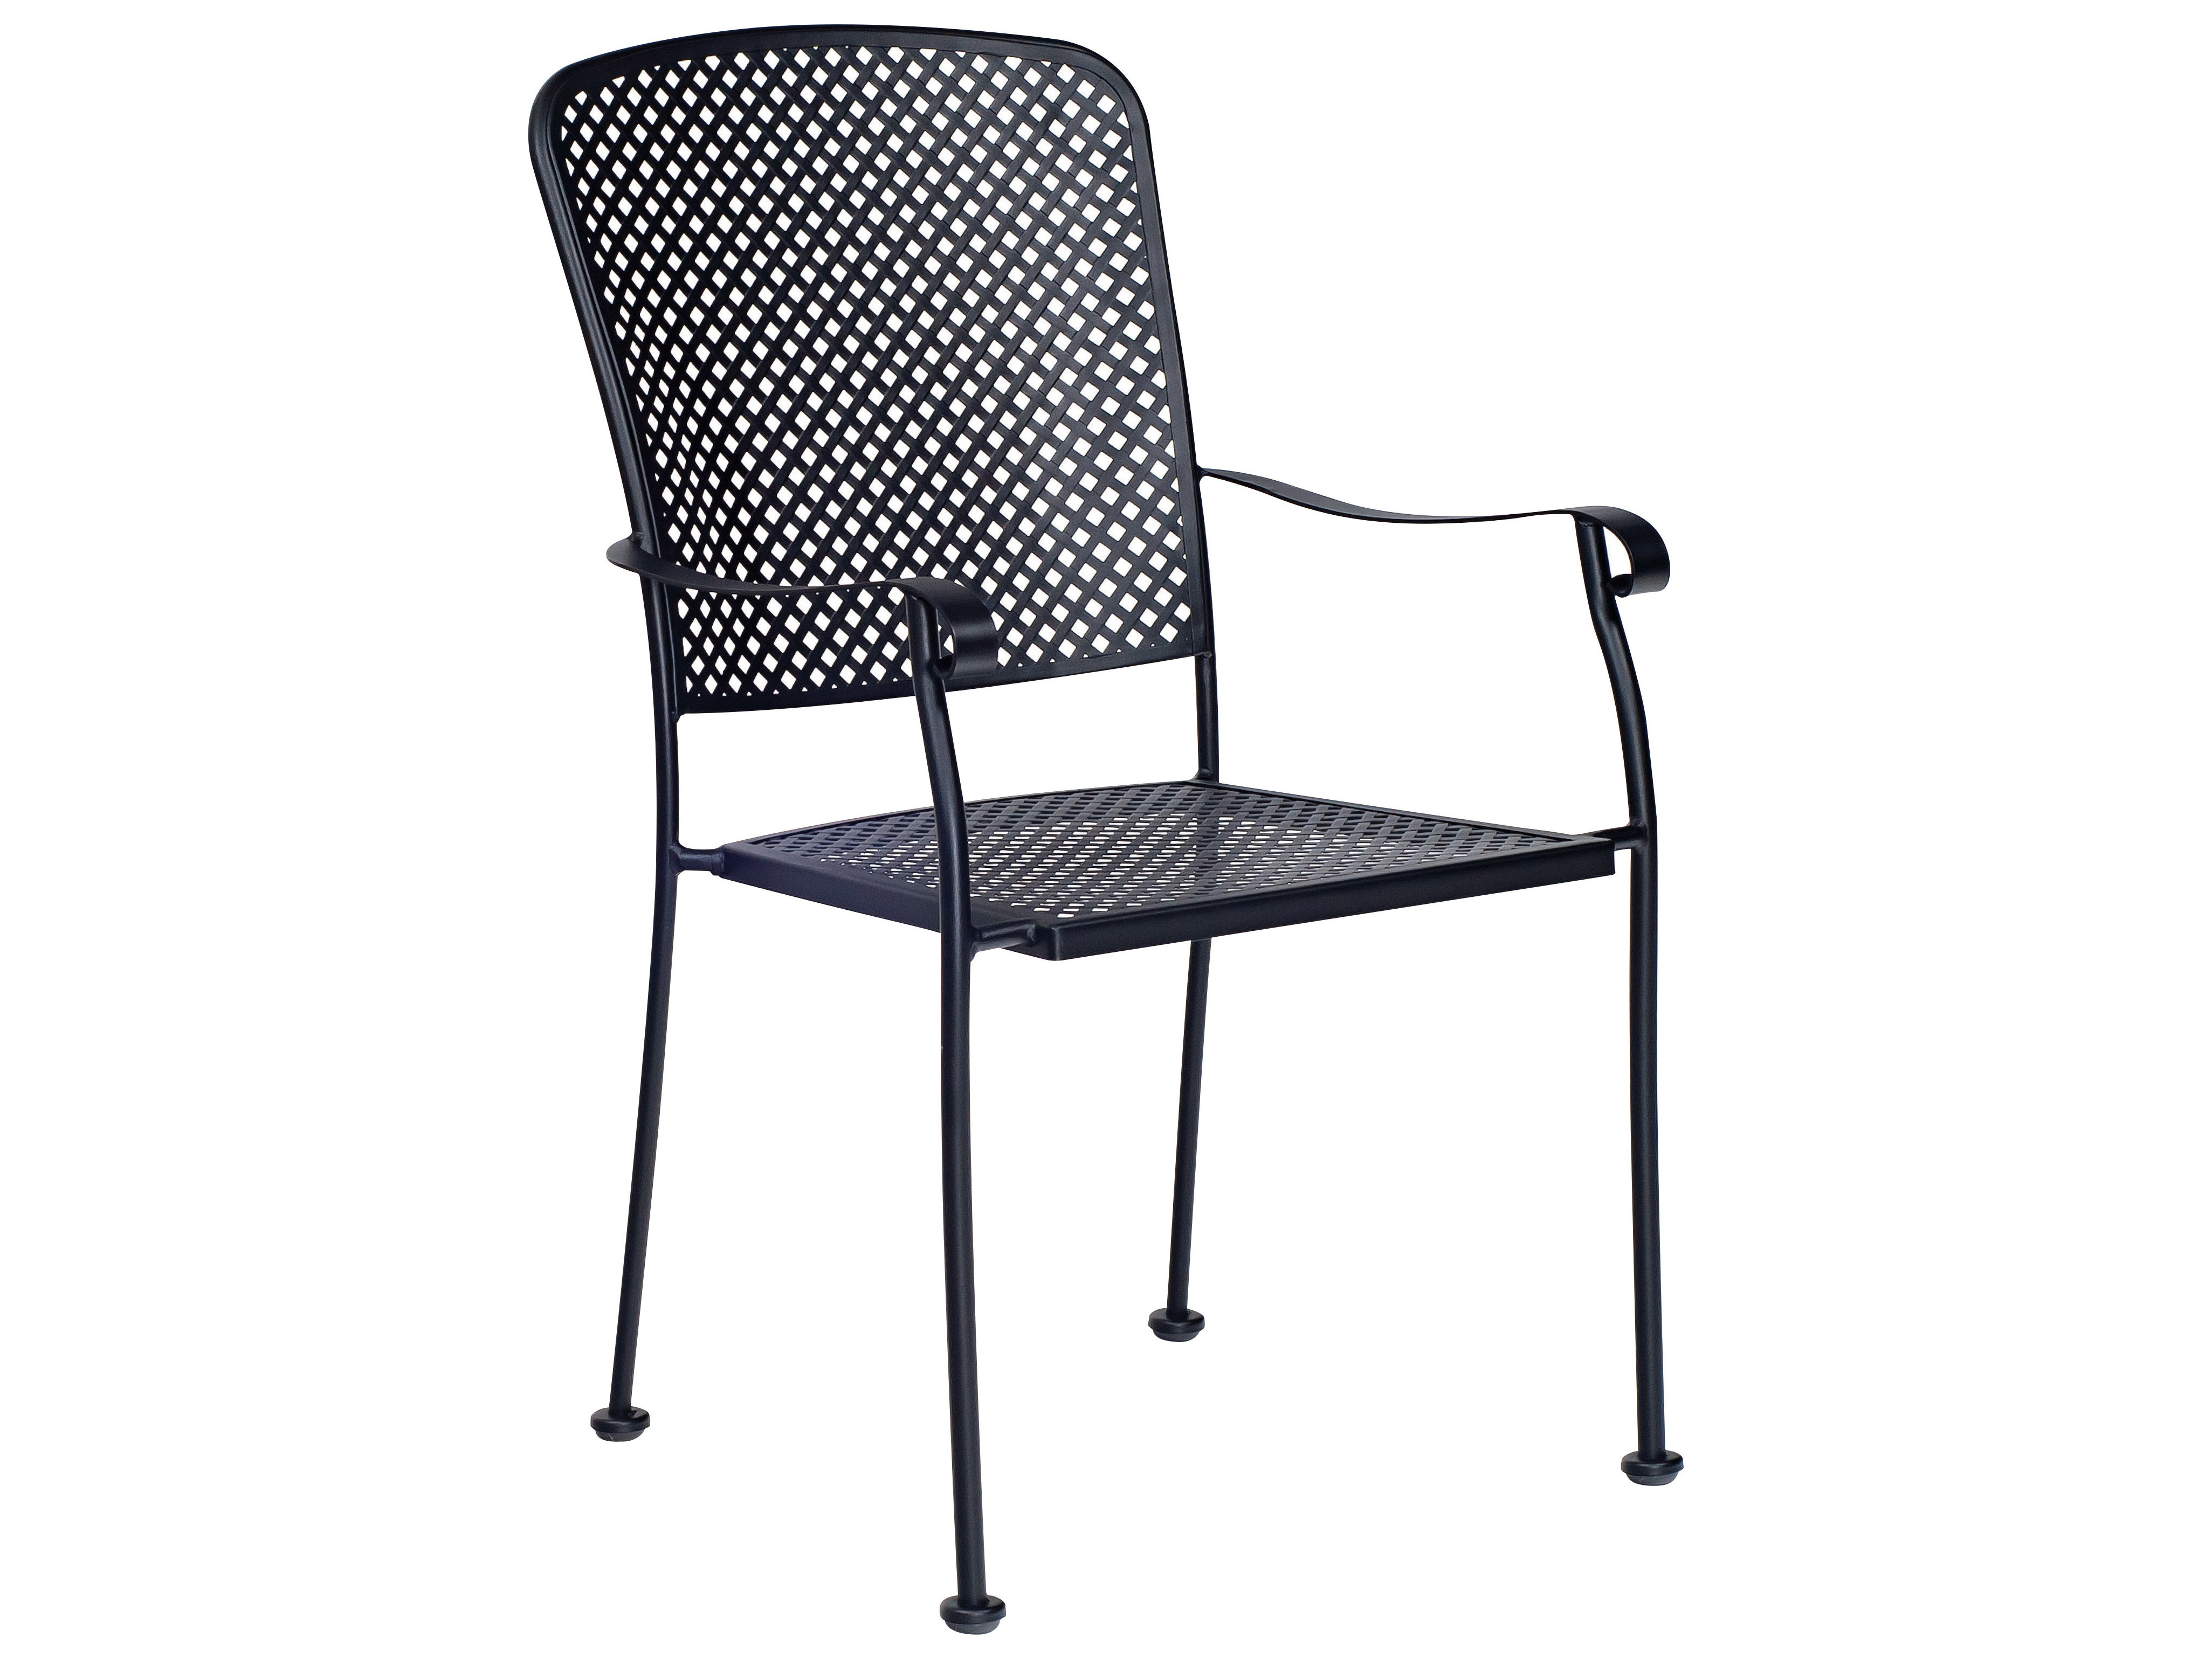 Woodard Fullerton Dining Arm Chair Replacement Cushions  : WR2Z0001CH1zm from www.patioliving.com size 4103 x 3078 jpeg 1079kB